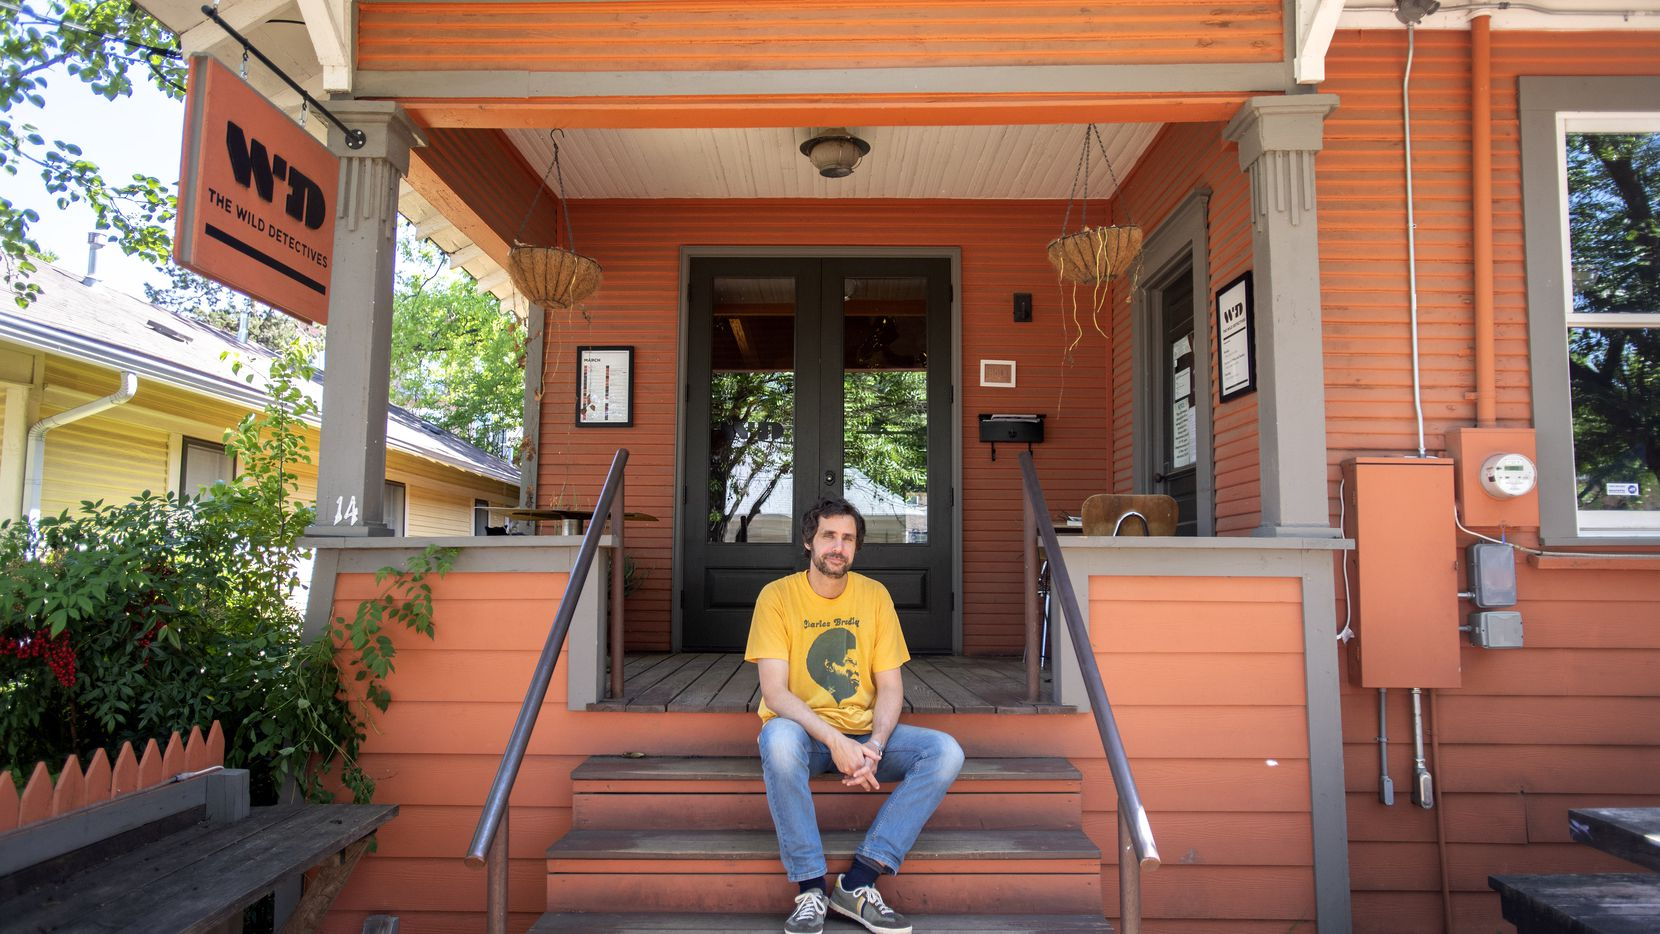 Javier Garcia del Moral, owner of The Wild Detectives bookstore and bar, poses for a portrait outside his quiet shop, April 29, 2020 in the Bishop Arts District in Dallas.